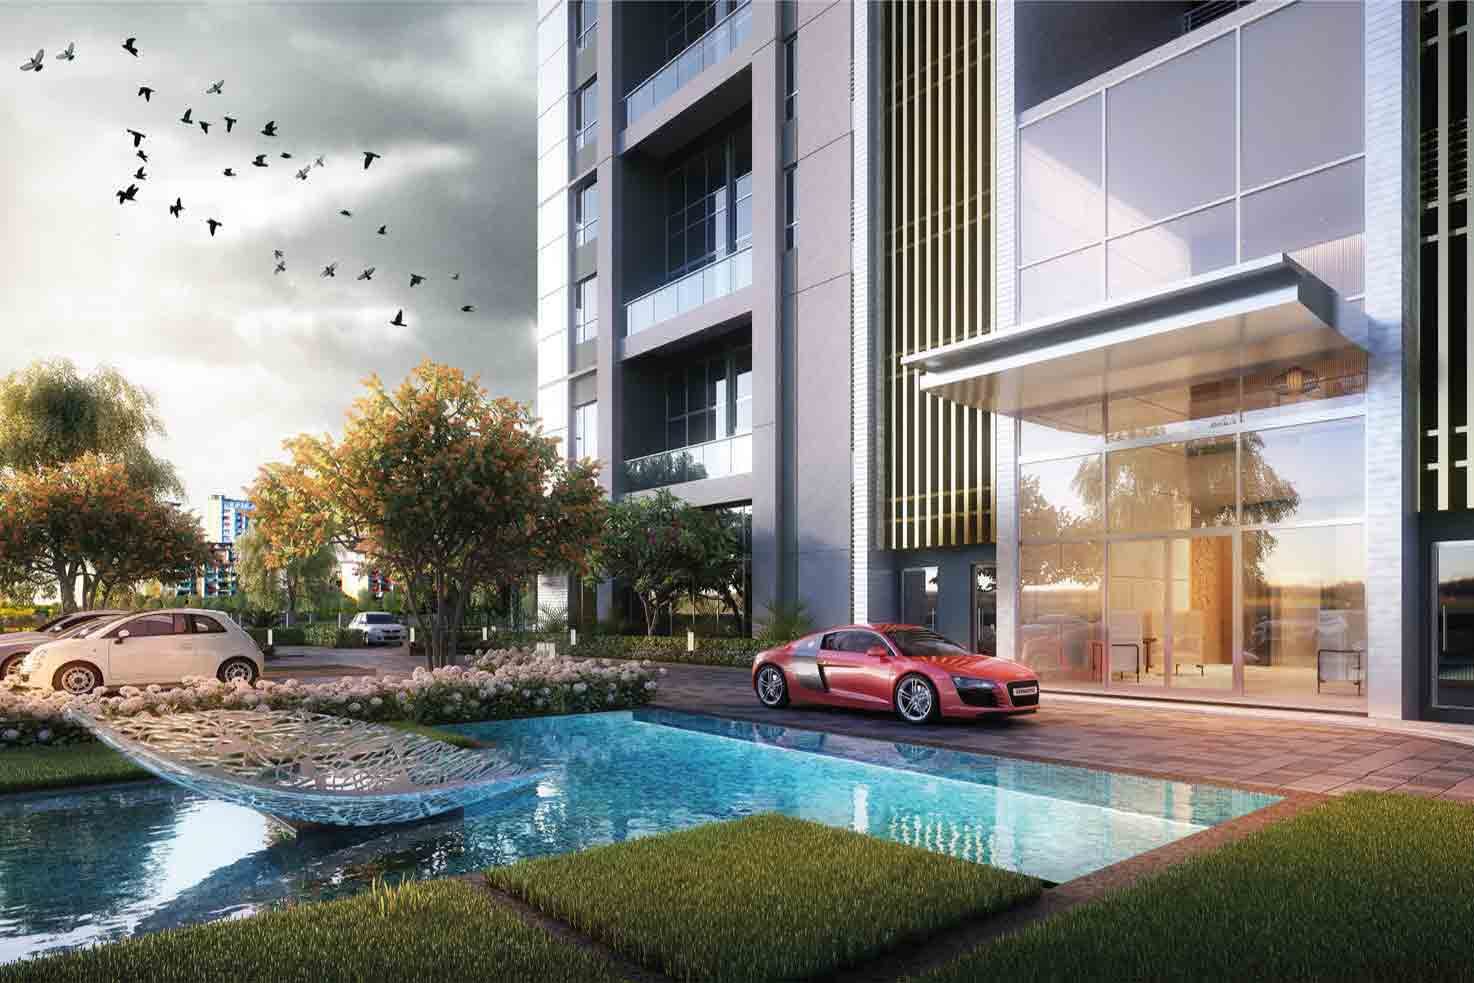 5 BHK Apartments on EM Bypass